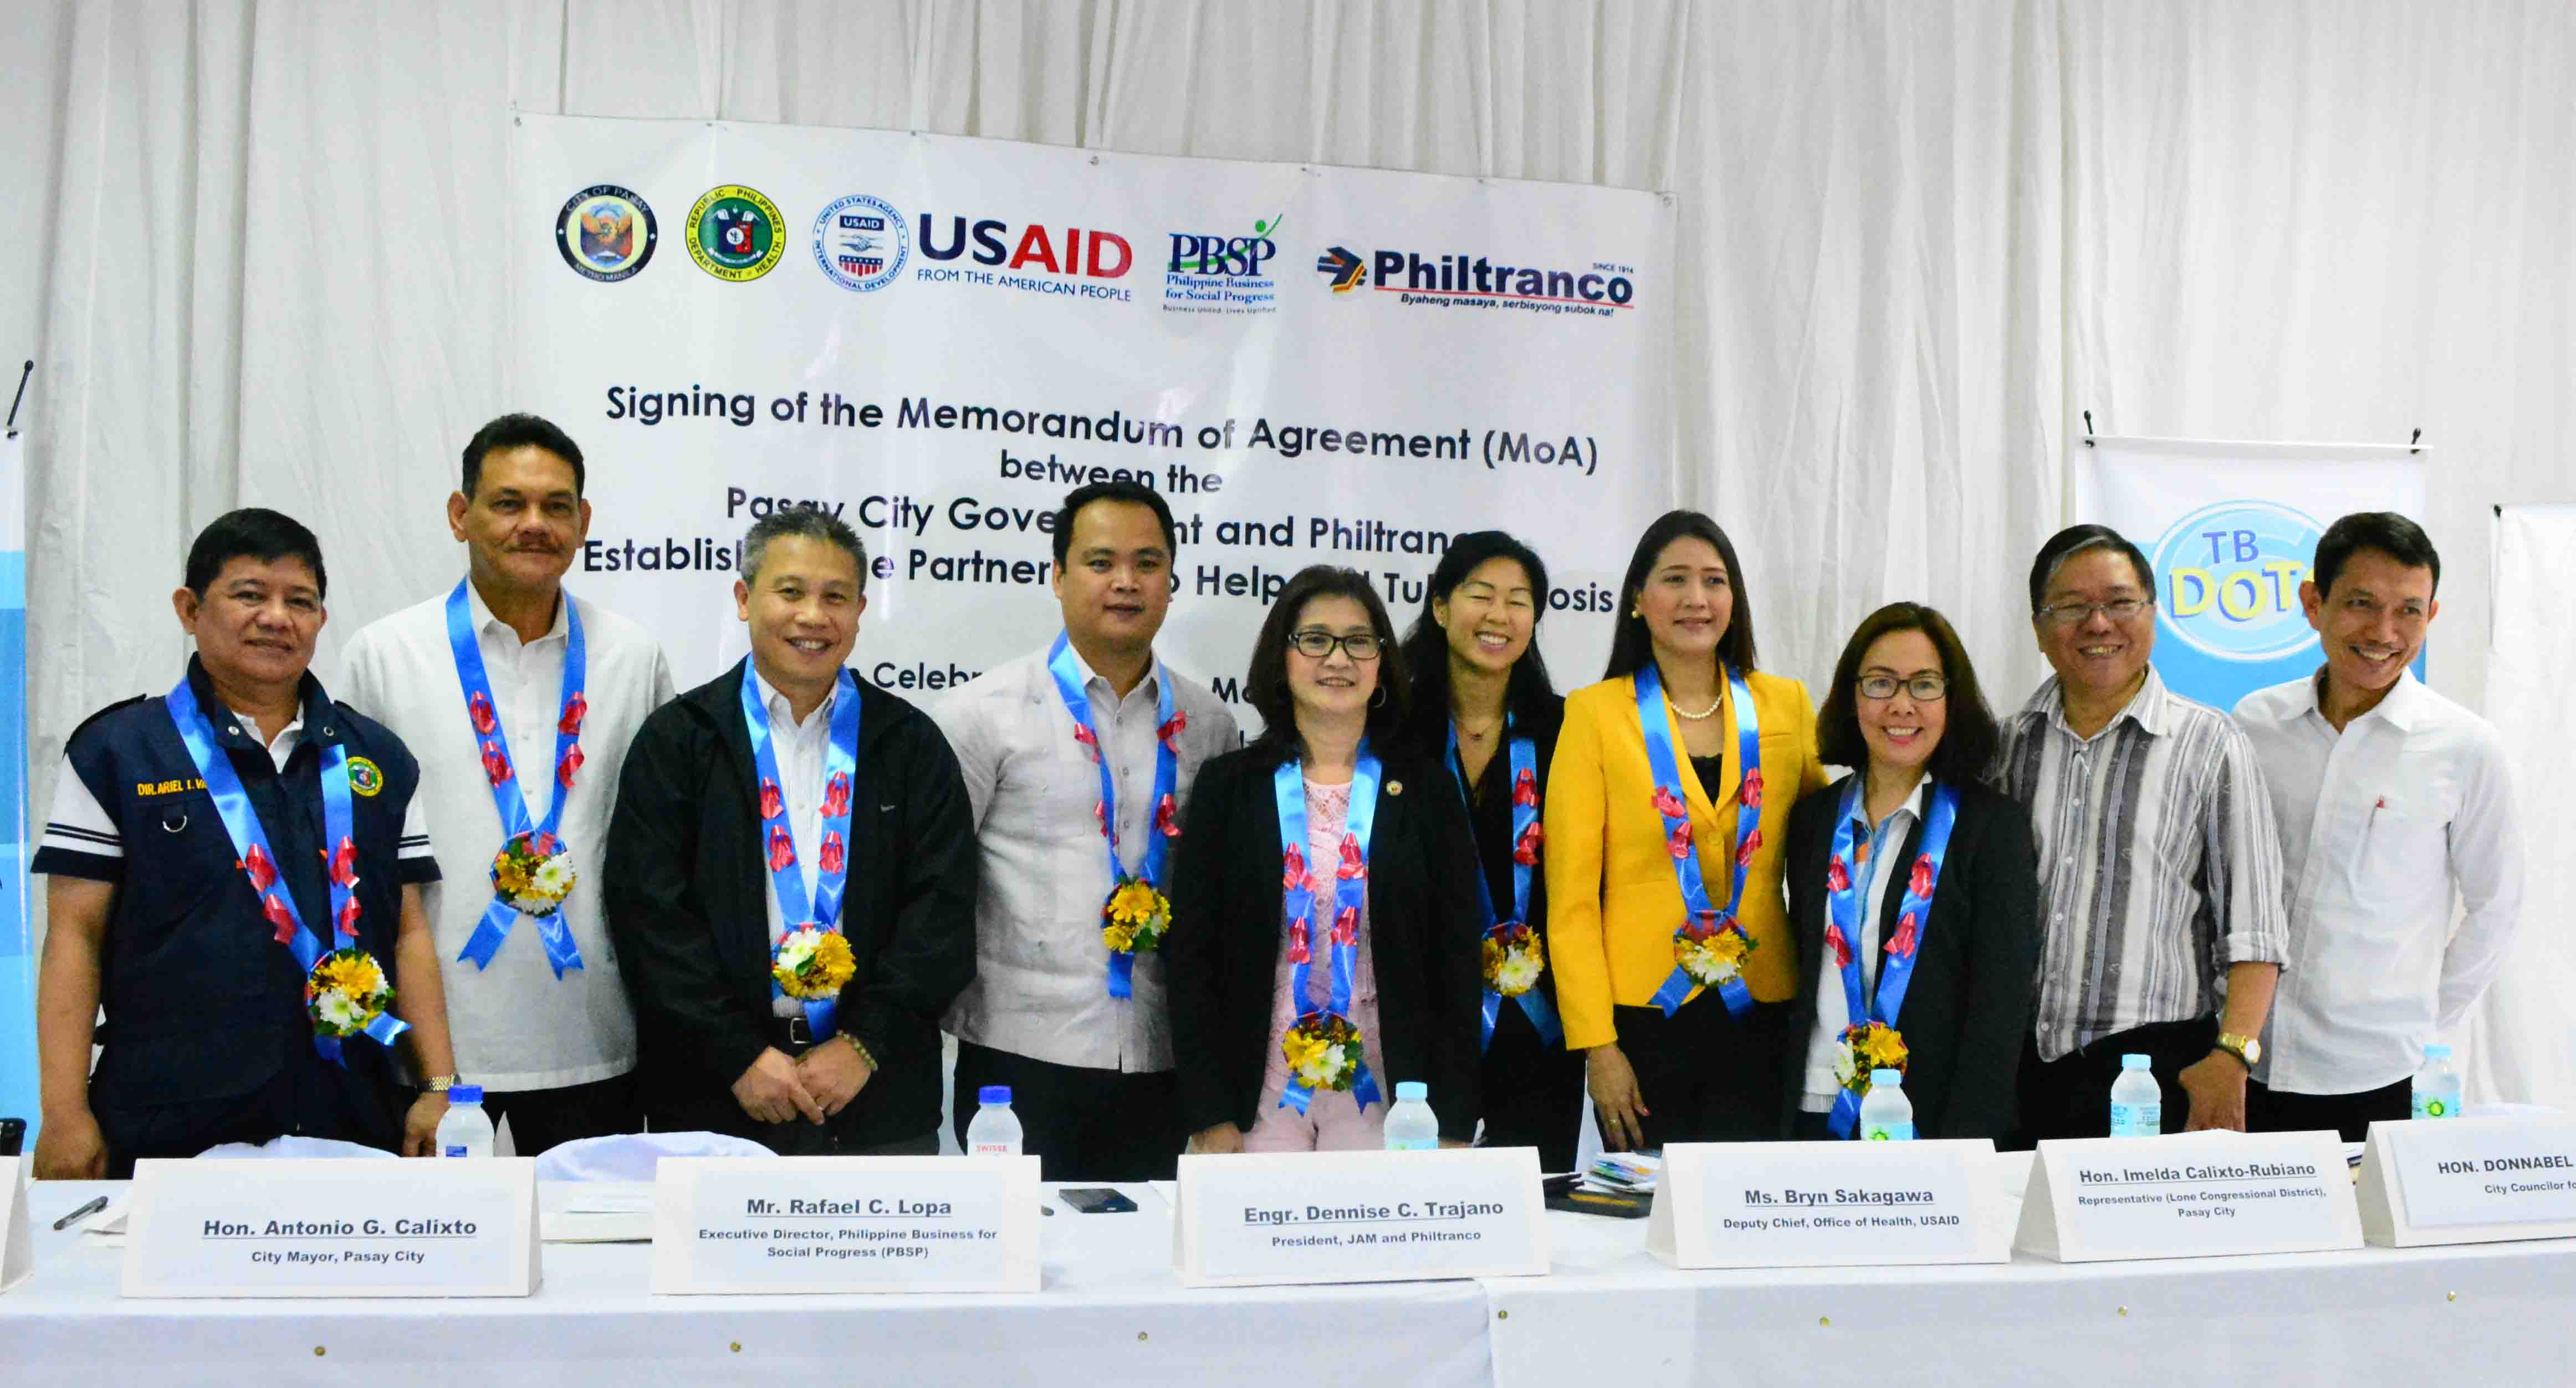 Memorandum of Agreement (MoA) between the Pasay City Government and Philtranco Establishing the Partnership to Help End Tuberculosis